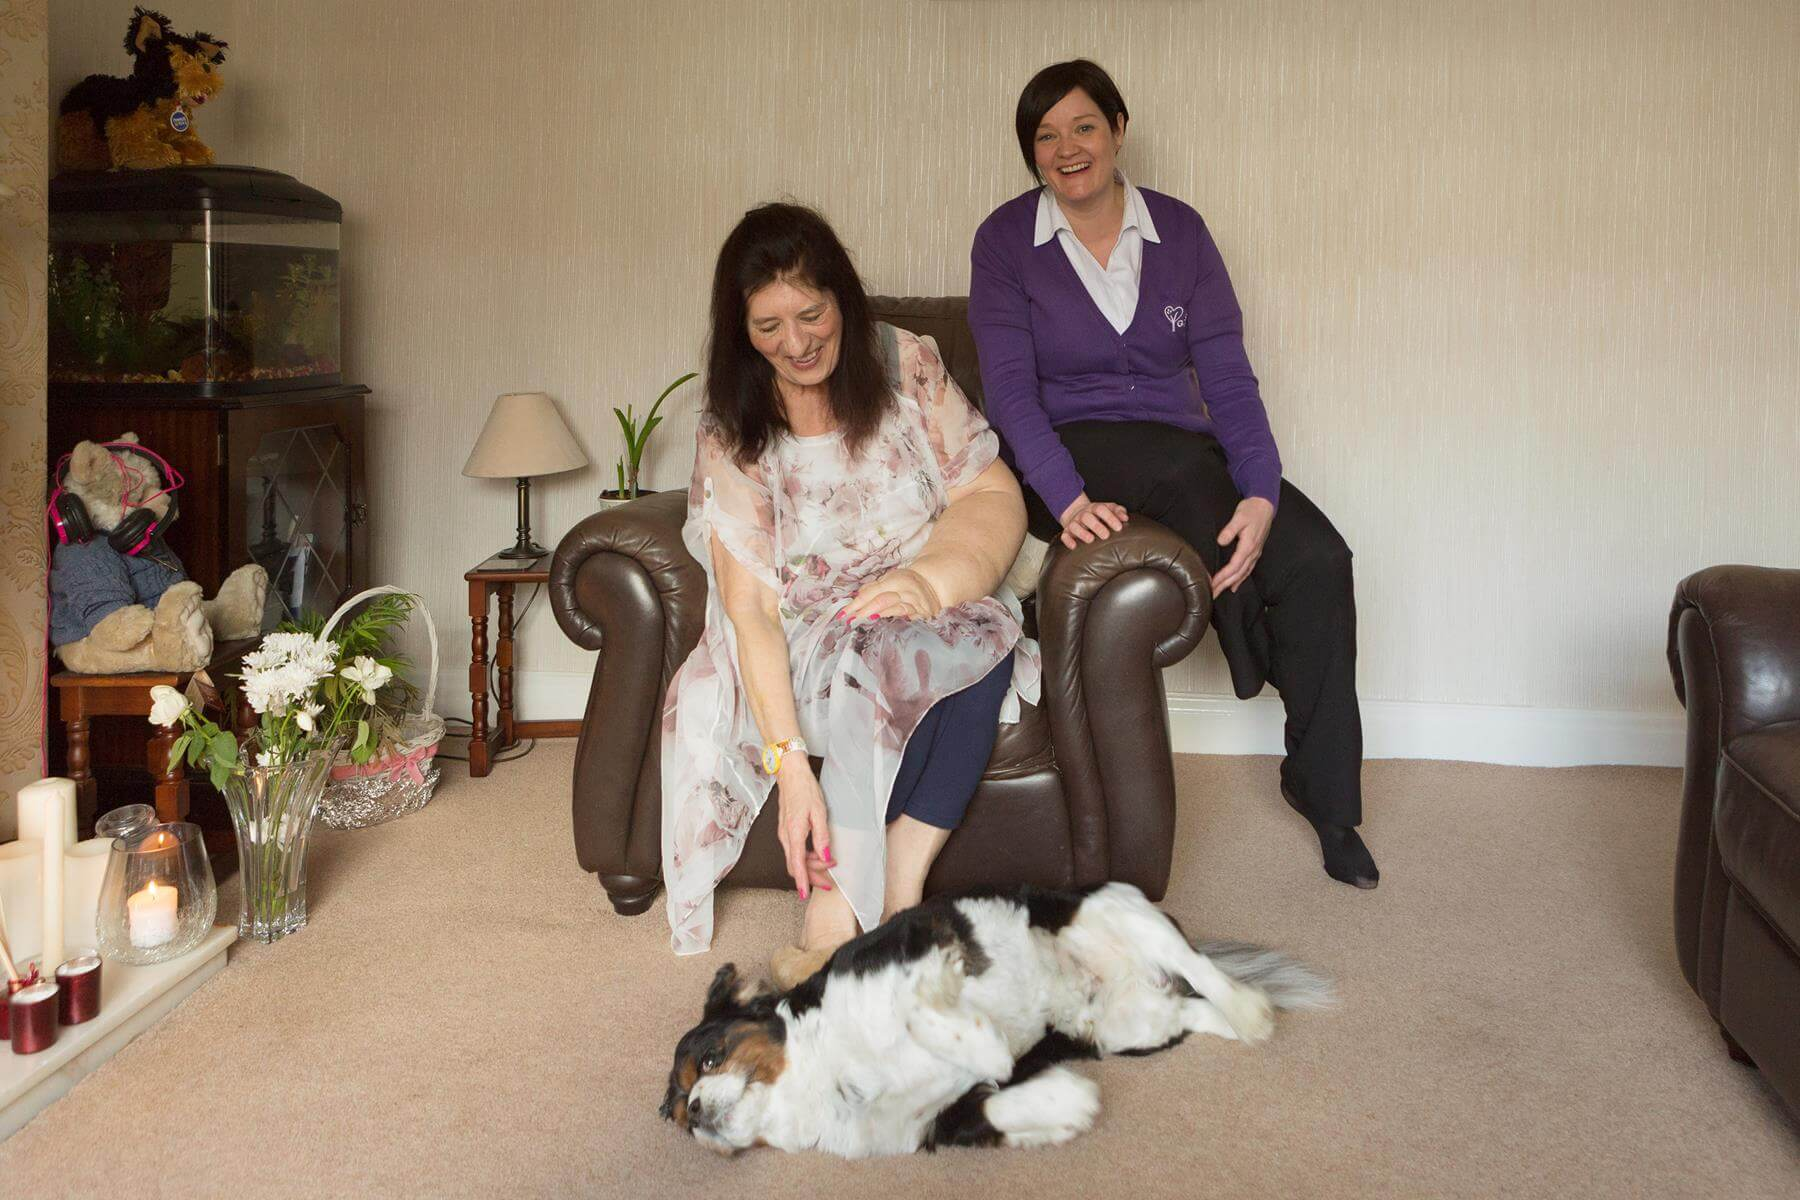 Community Nurse in a patient's living room with patient and their dog